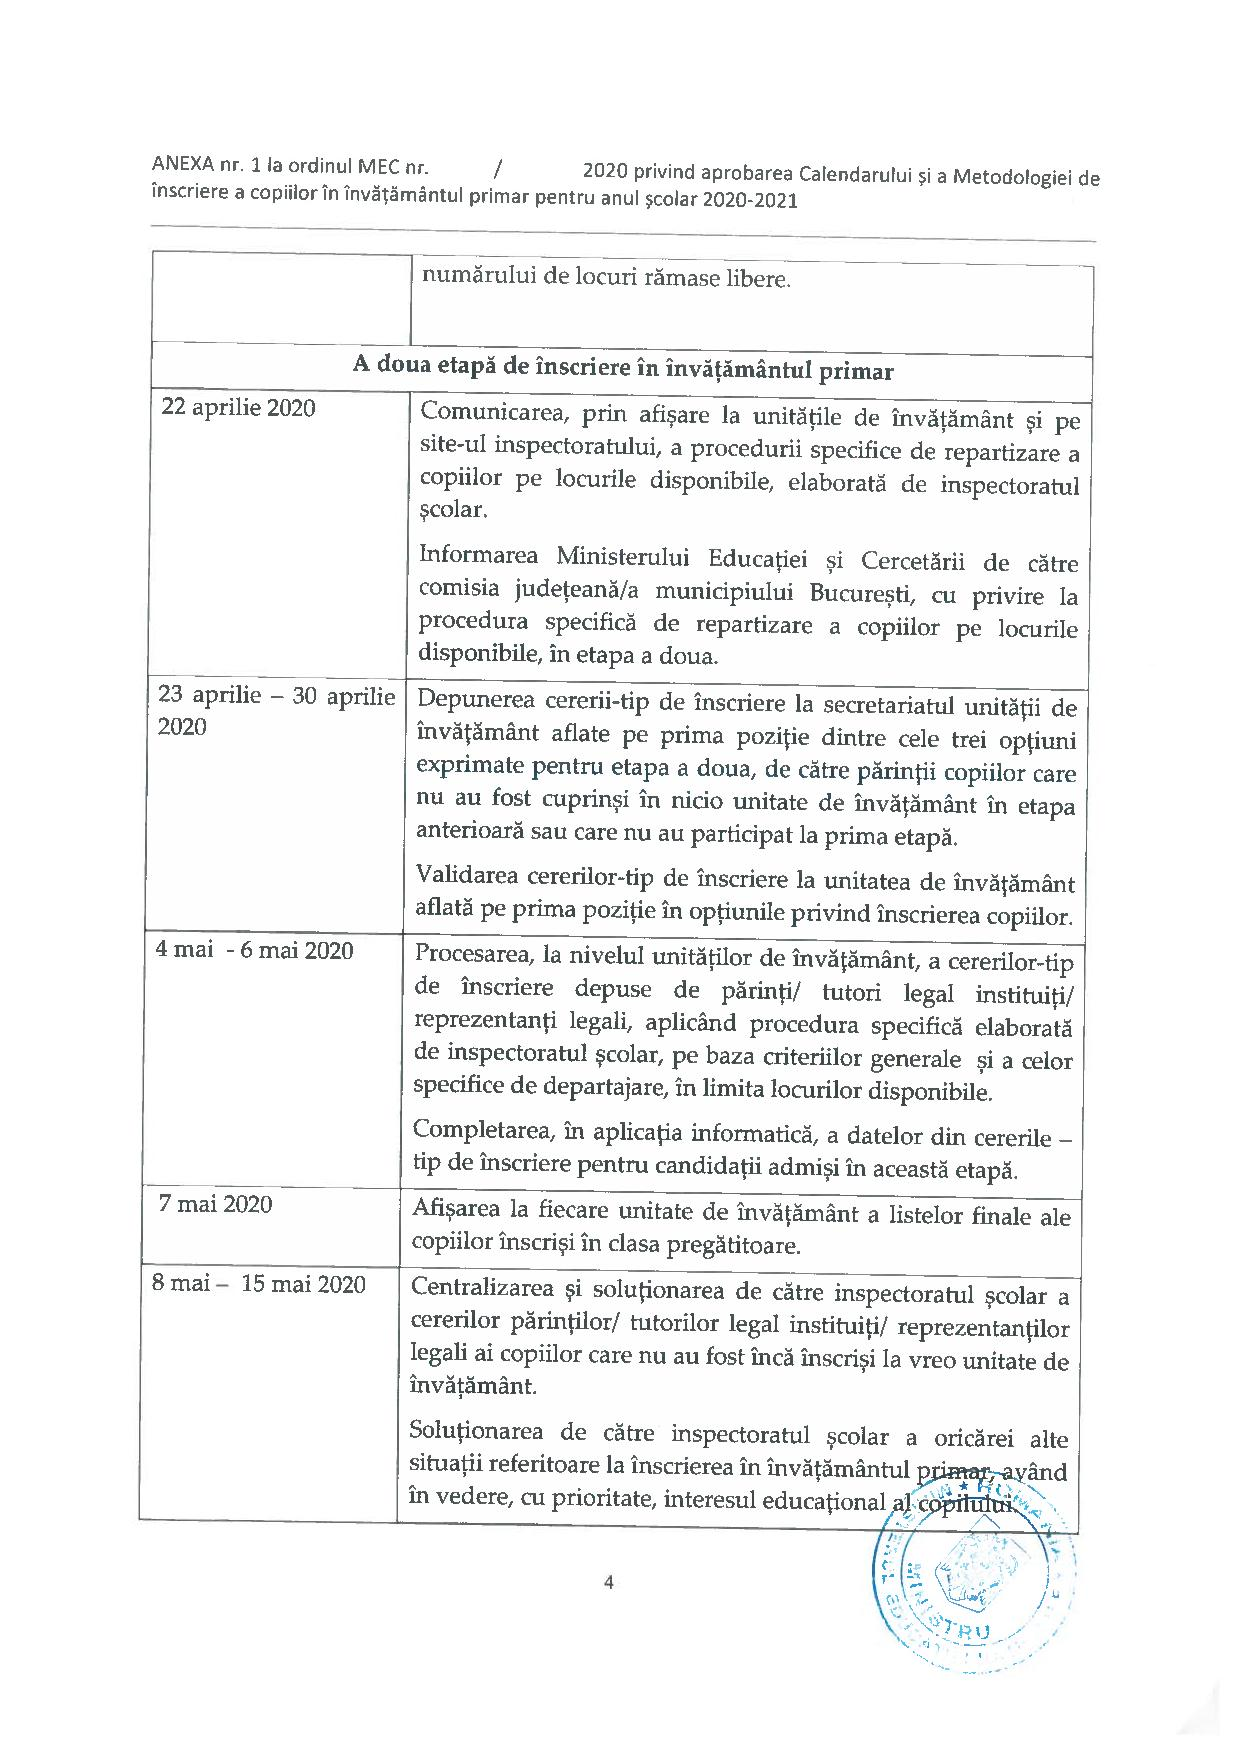 Calendar_inscriere_inv. primar_2020-pages-28-31 (1)-page-004.jpg